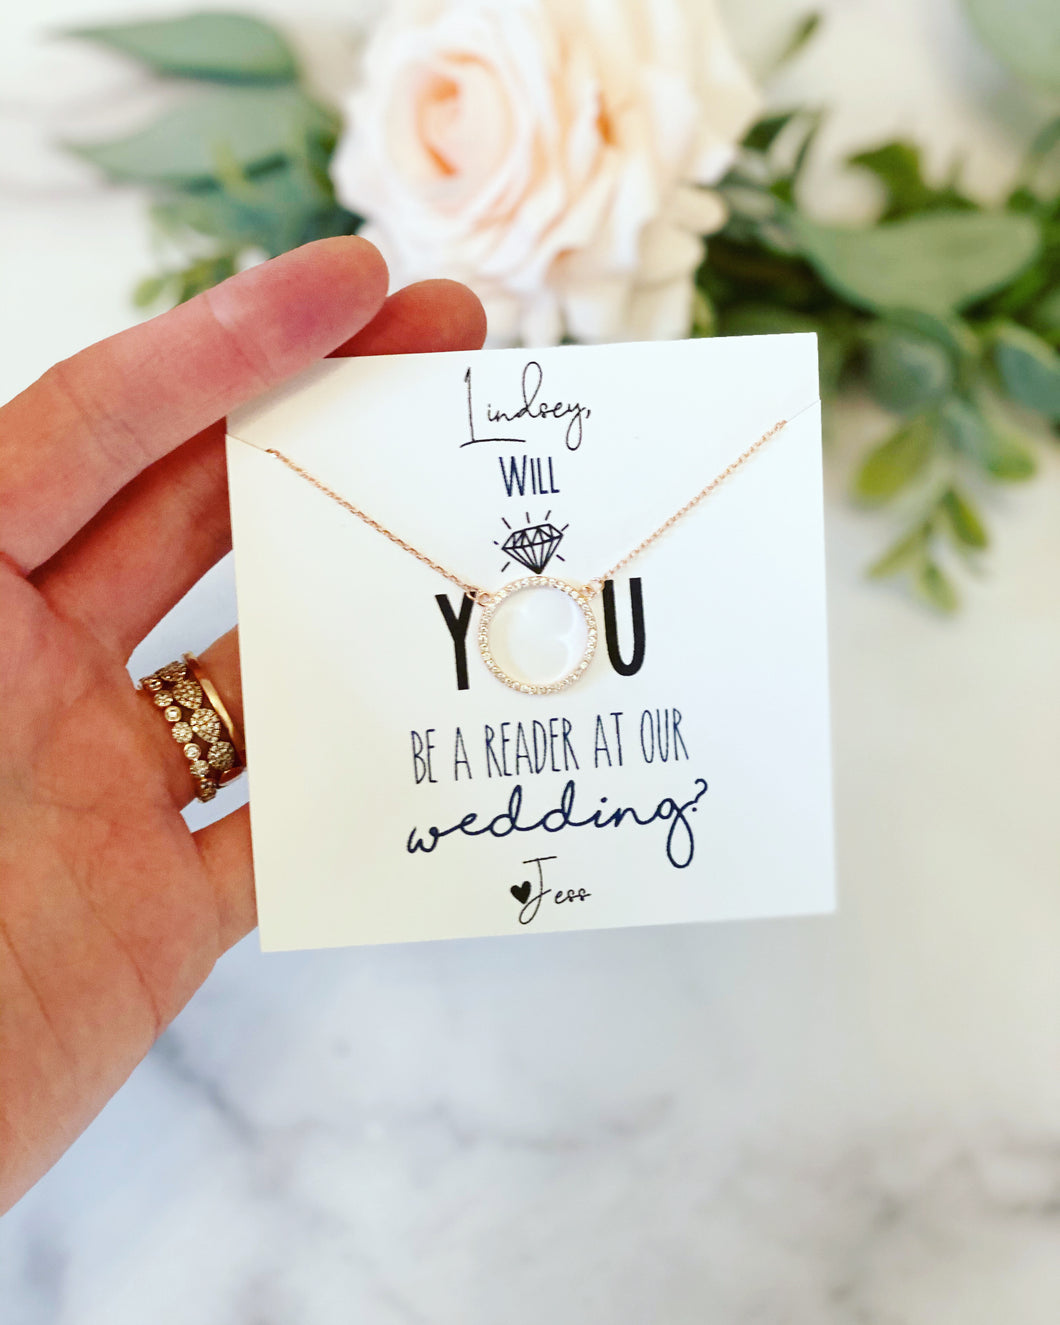 Will you be a reader at our wedding?